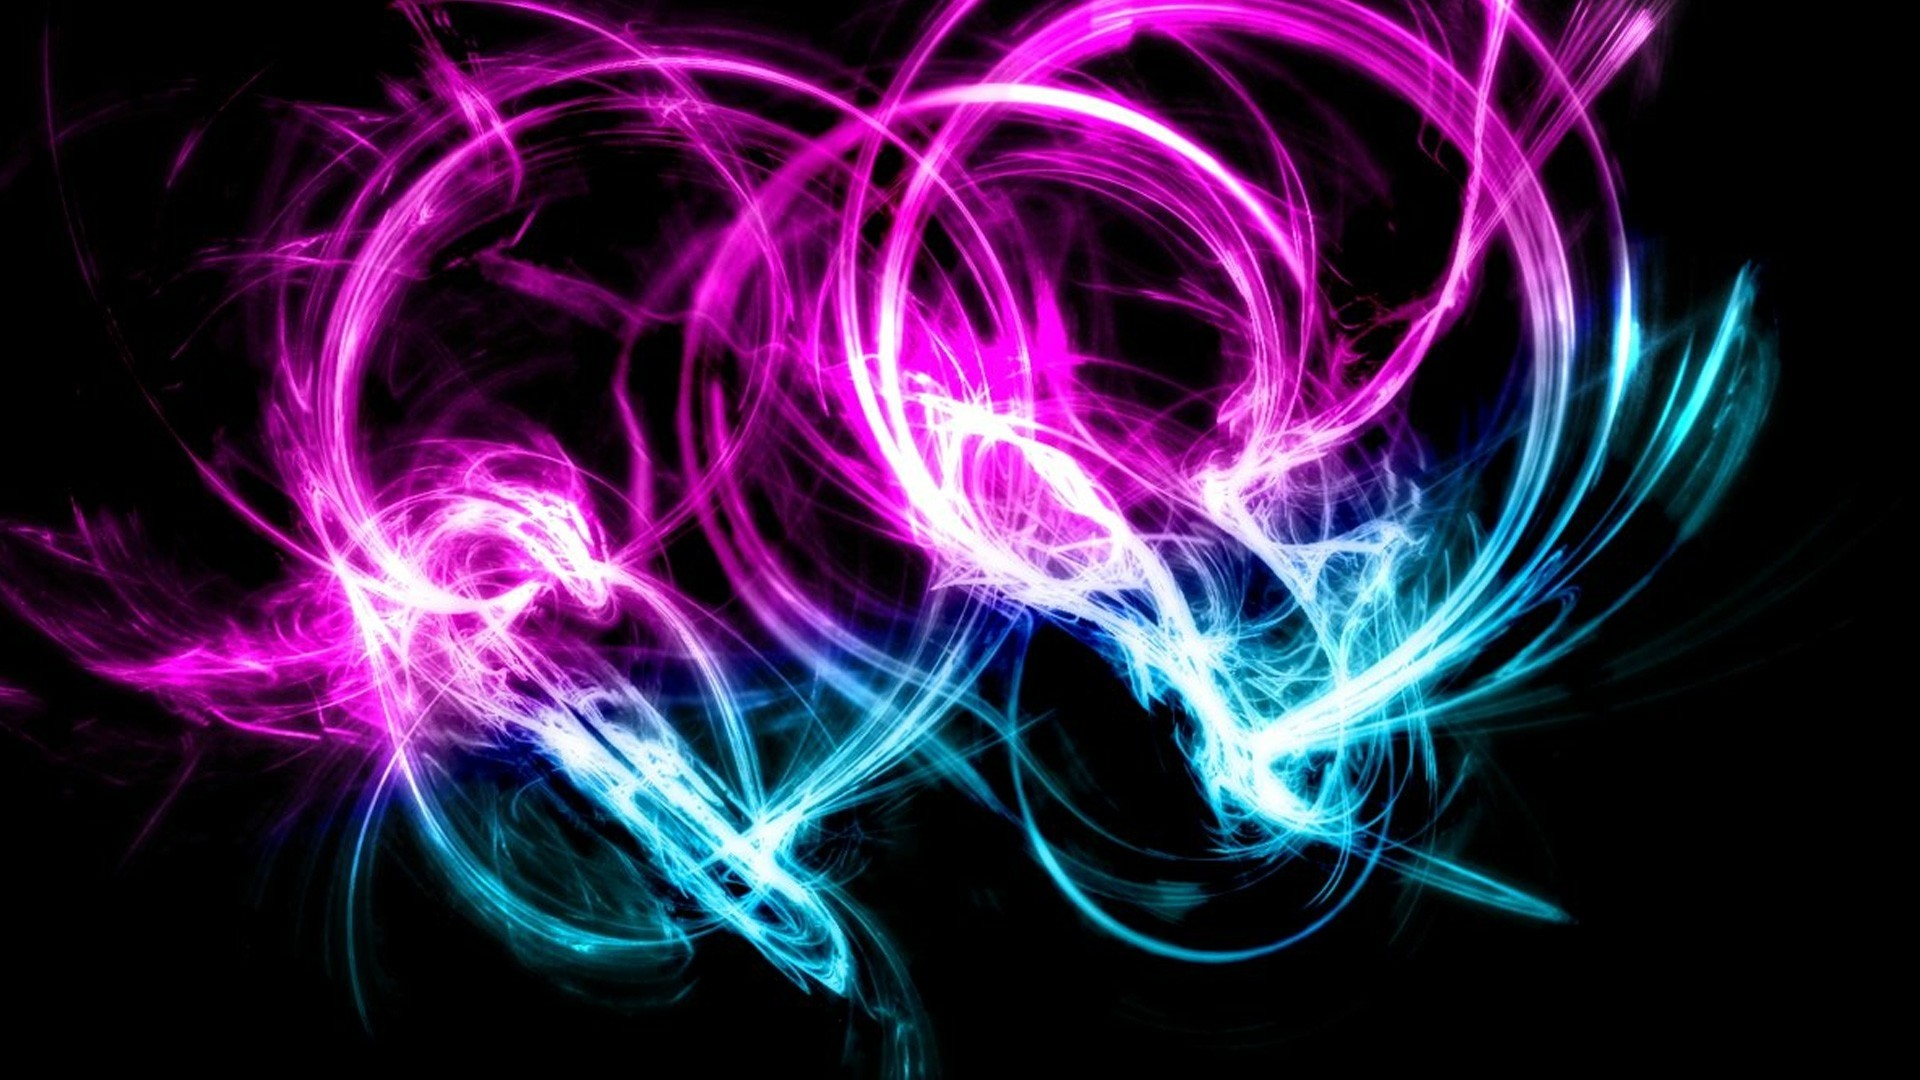 Full HD 1080p Neon Wallpapers HD, Desktop Backgrounds 1920×1080, Images and  Pictures